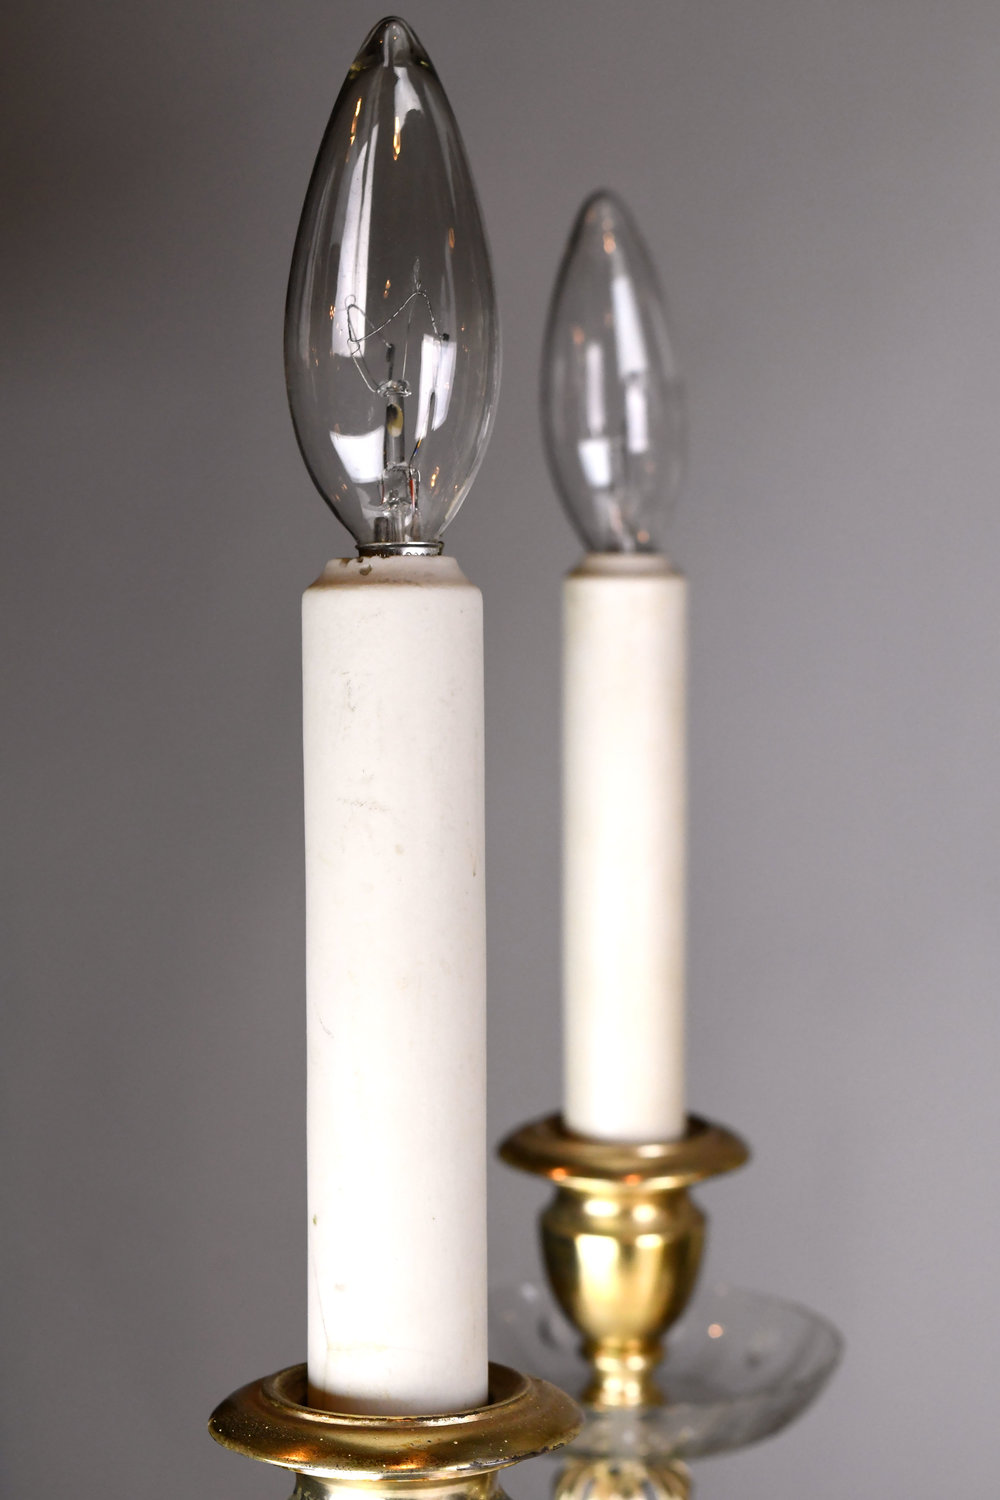 47326-bradley-hubbard-six-arm-chandelier-candle-cover.jpg